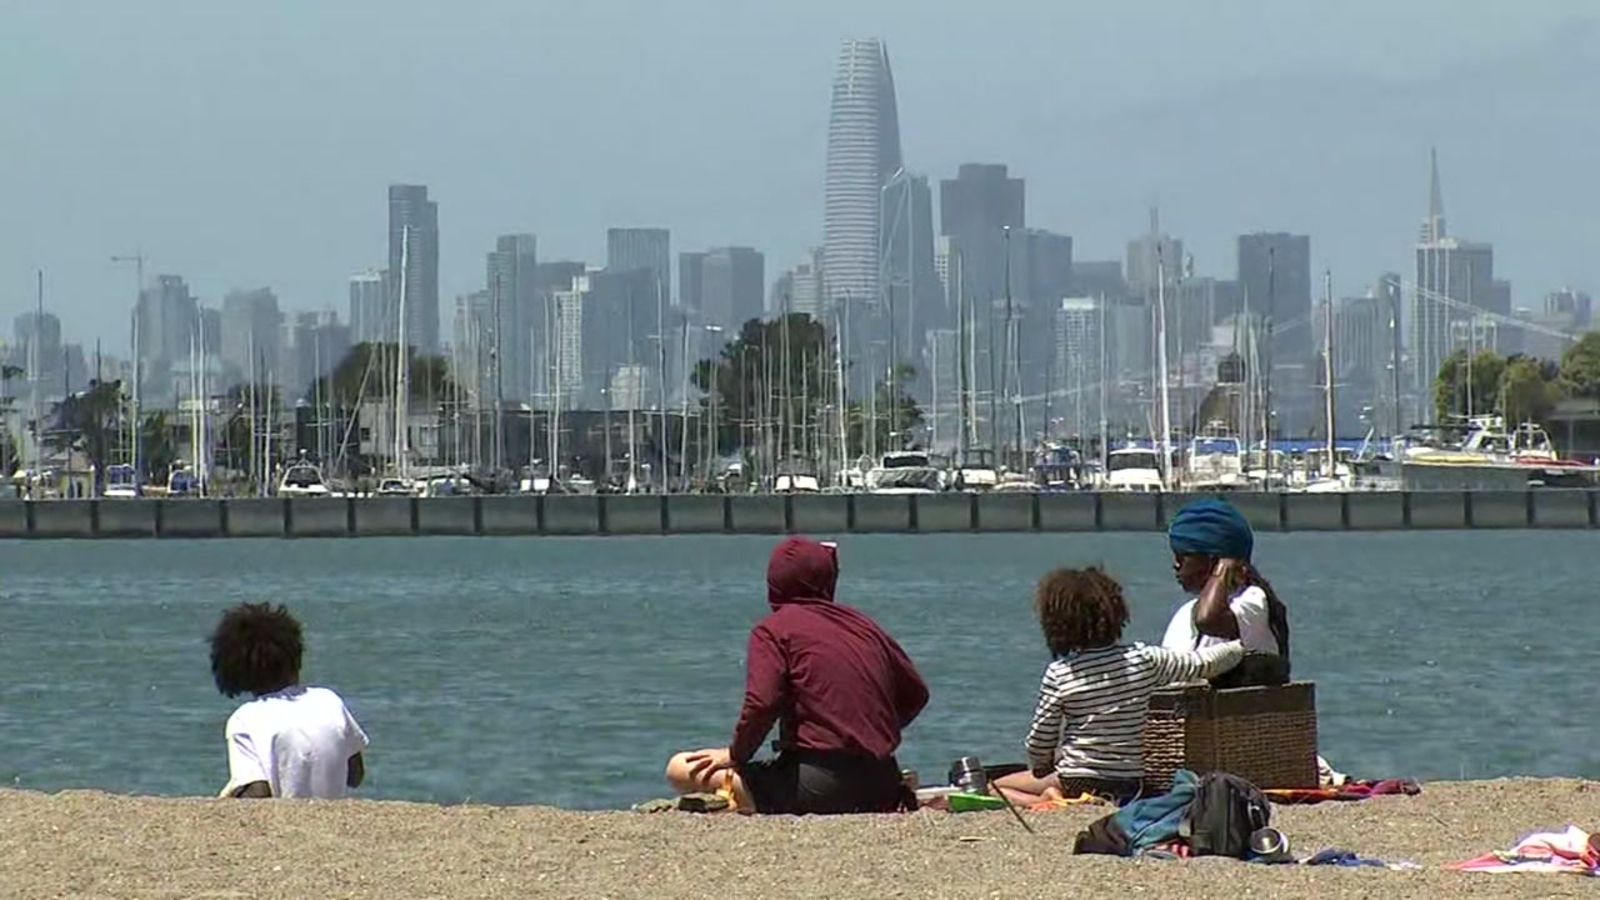 Alameda beaches remain open for July 4th holiday despite surging coronavirus cases in Alameda County